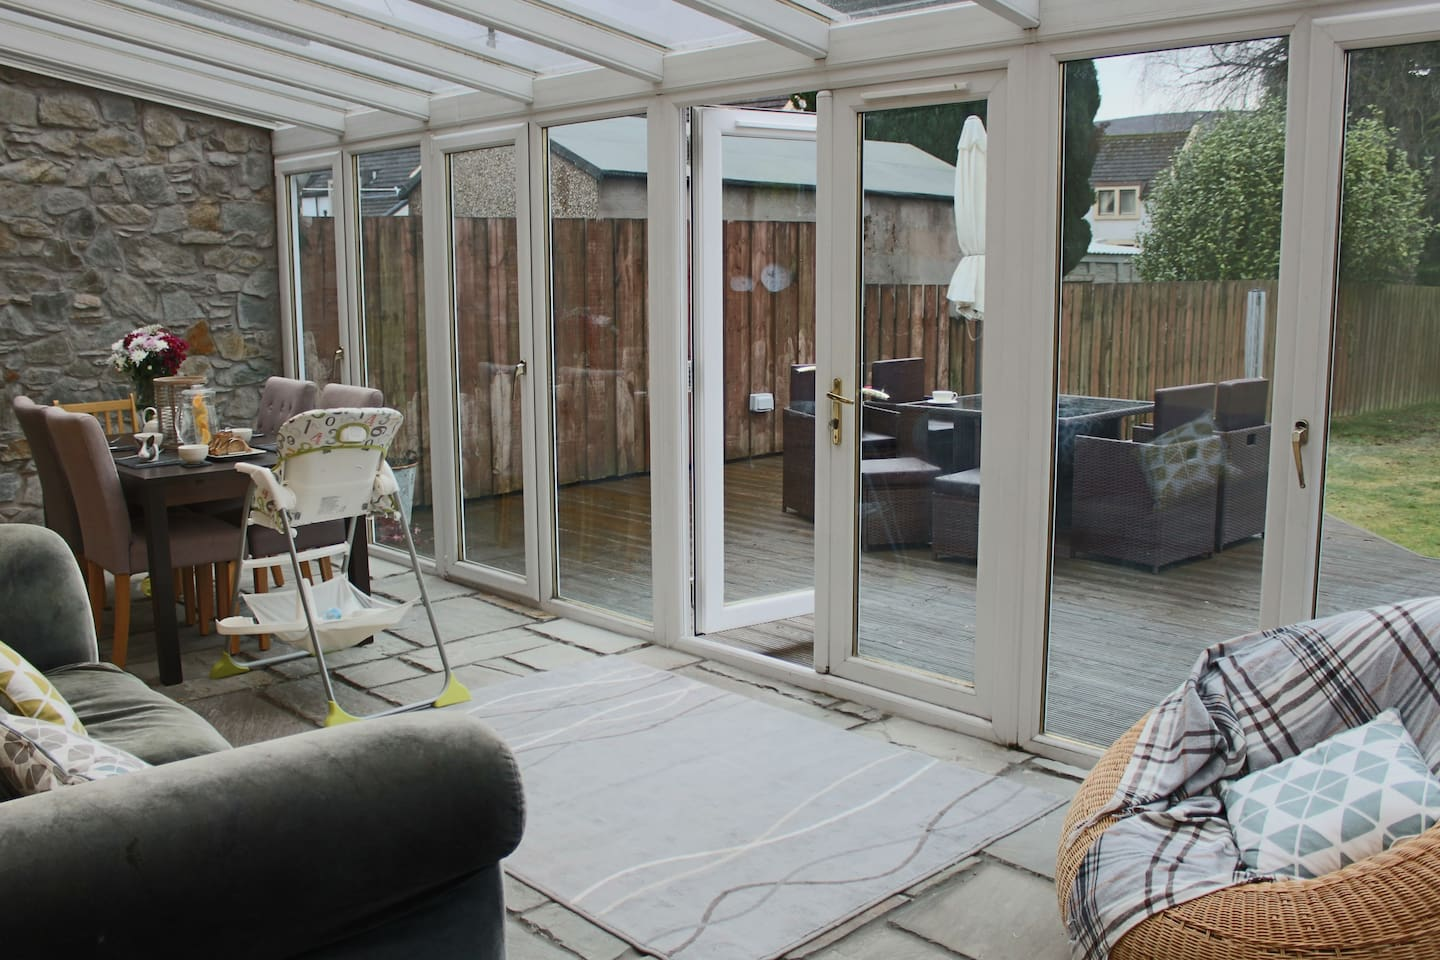 Large conservatory looking onto decking and back garden. Catches the sun in the afternoon/evening so ideal for barbecues!